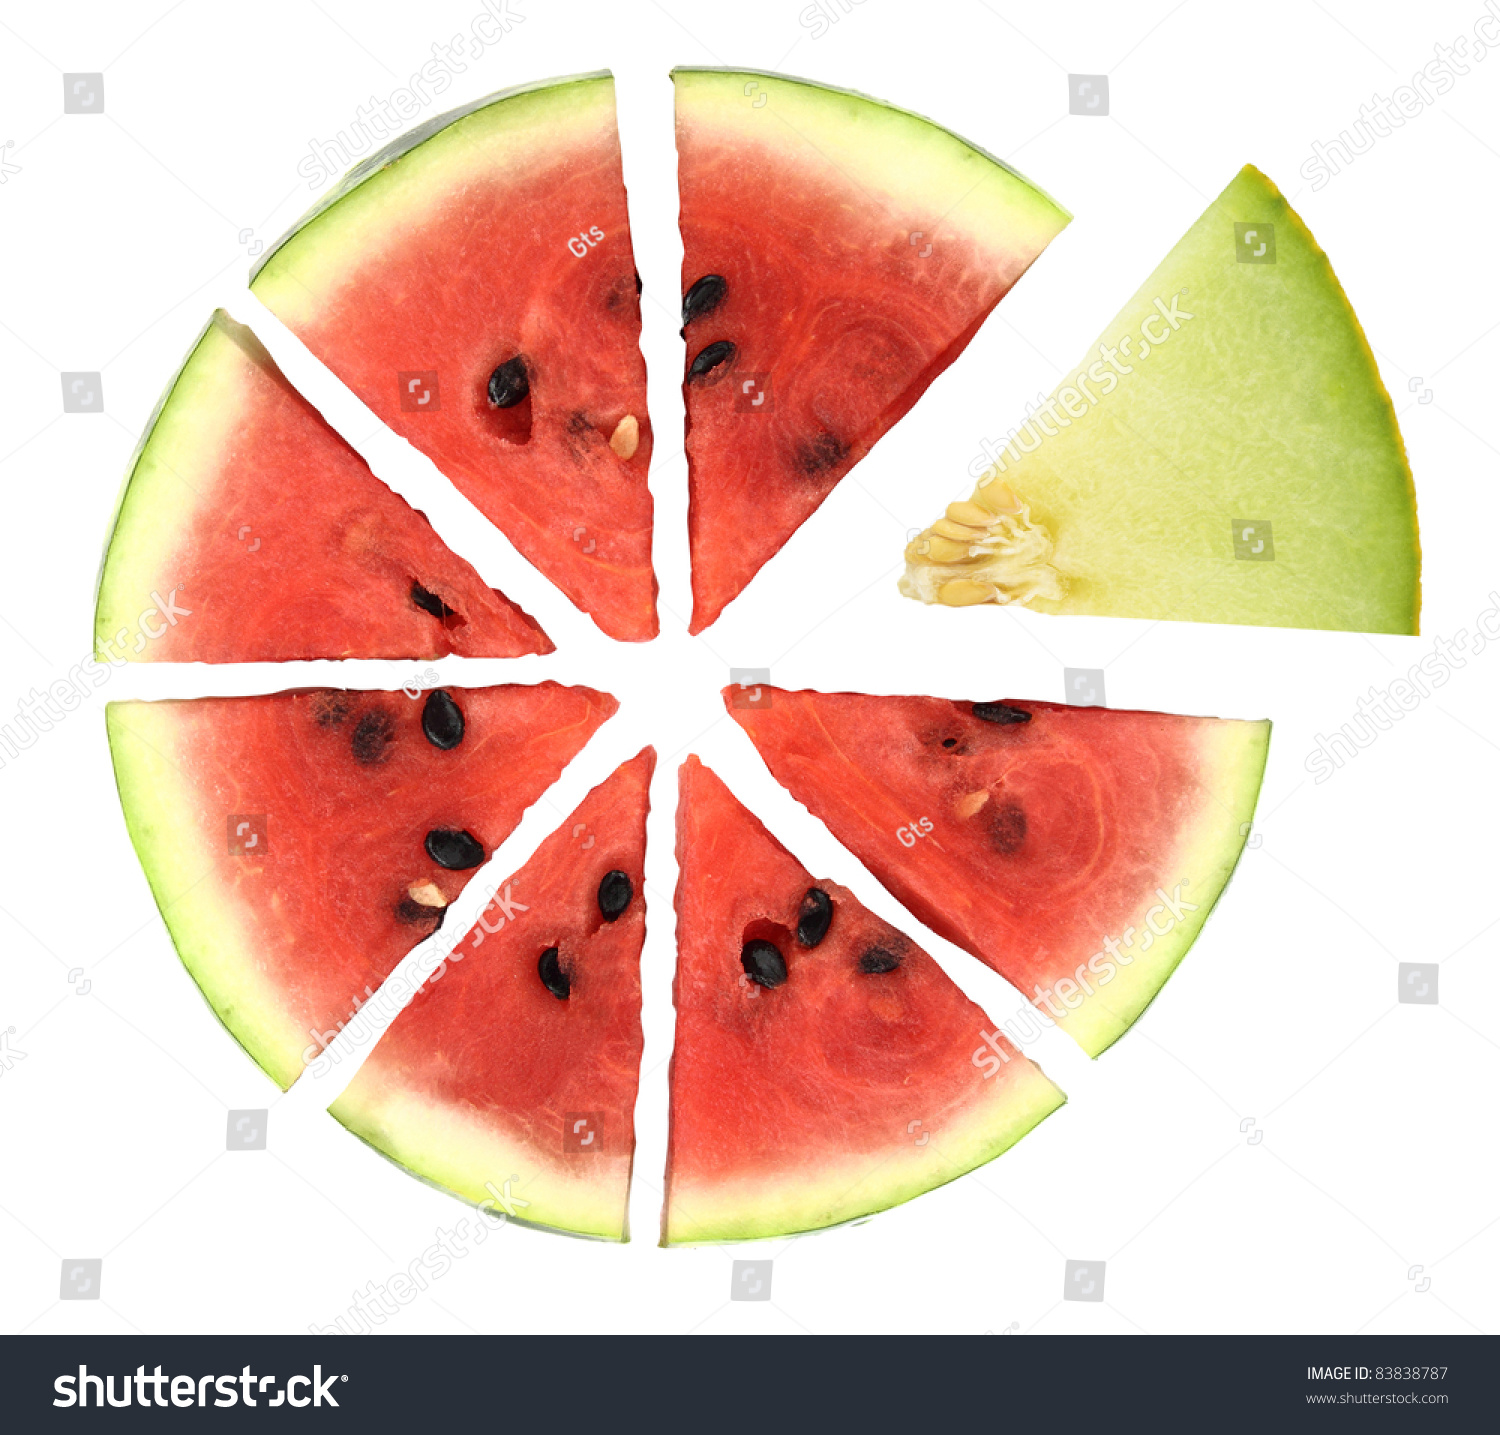 Pie chart watermelon slices stock photo 83838787 shutterstock pie chart of watermelon slices nvjuhfo Choice Image